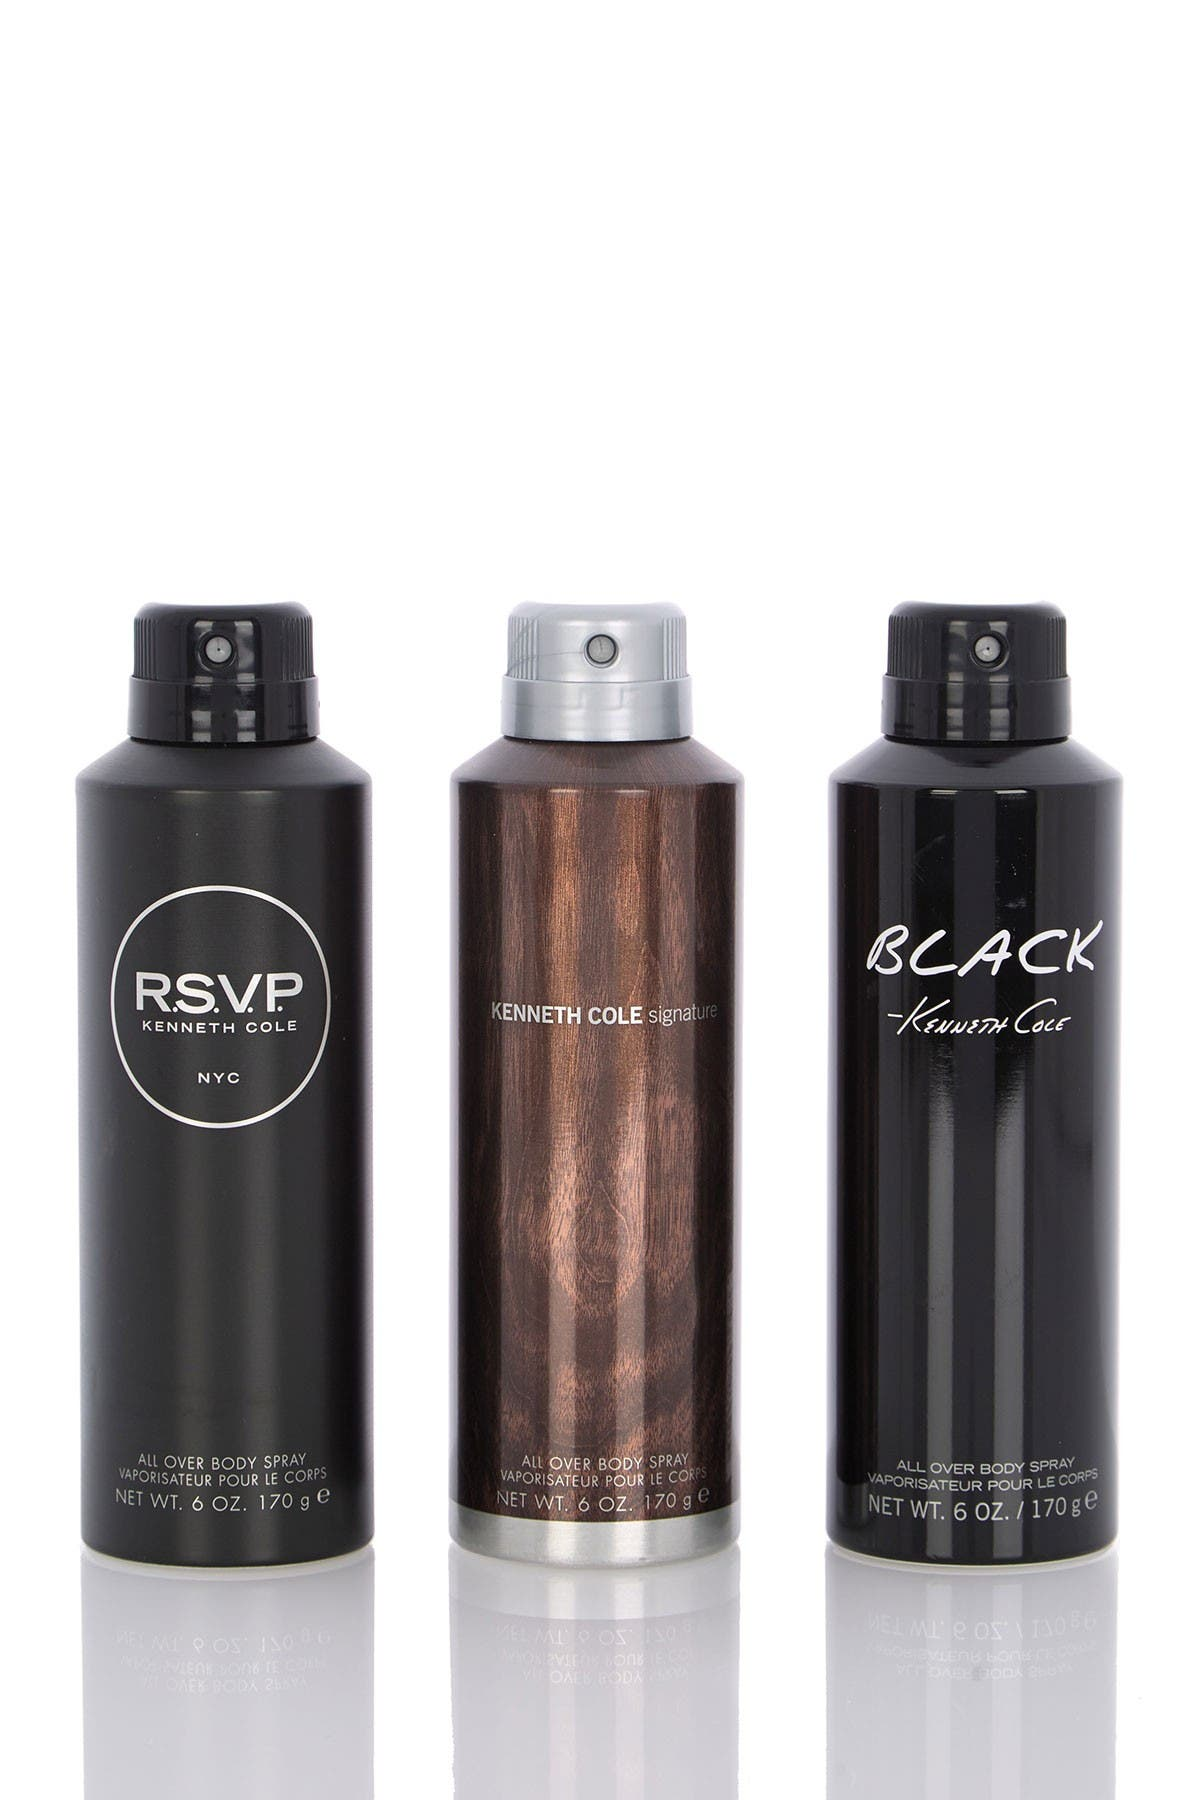 Image of KENNETH COLE Body Spray Trio for Him